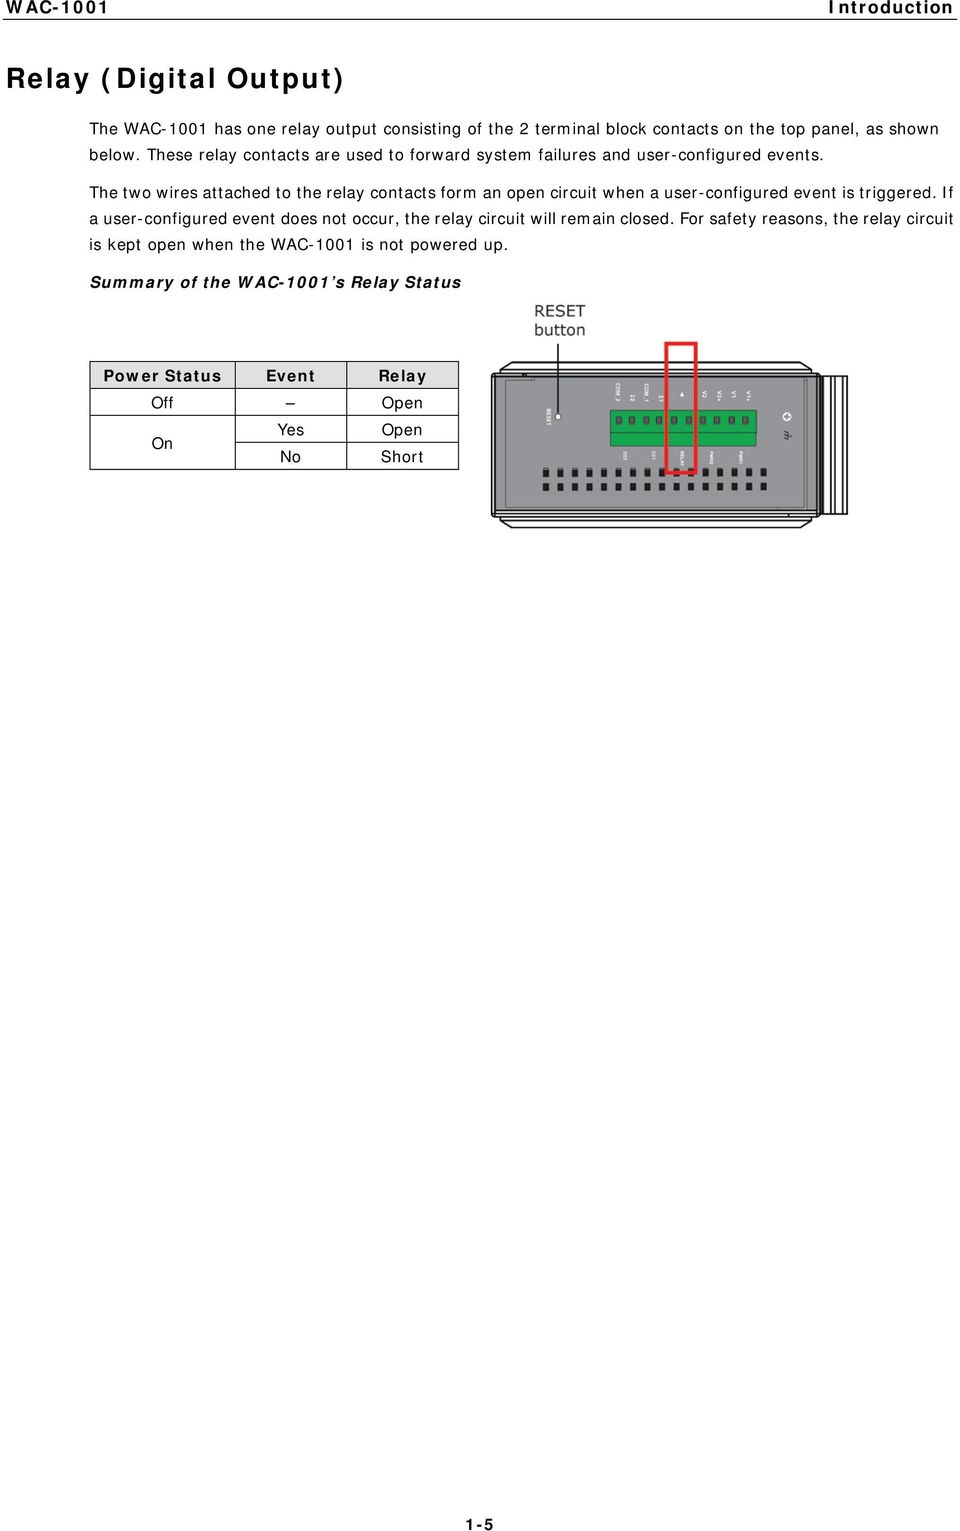 The two wires attached to the relay contacts form an open circuit when a user-configured event is triggered.